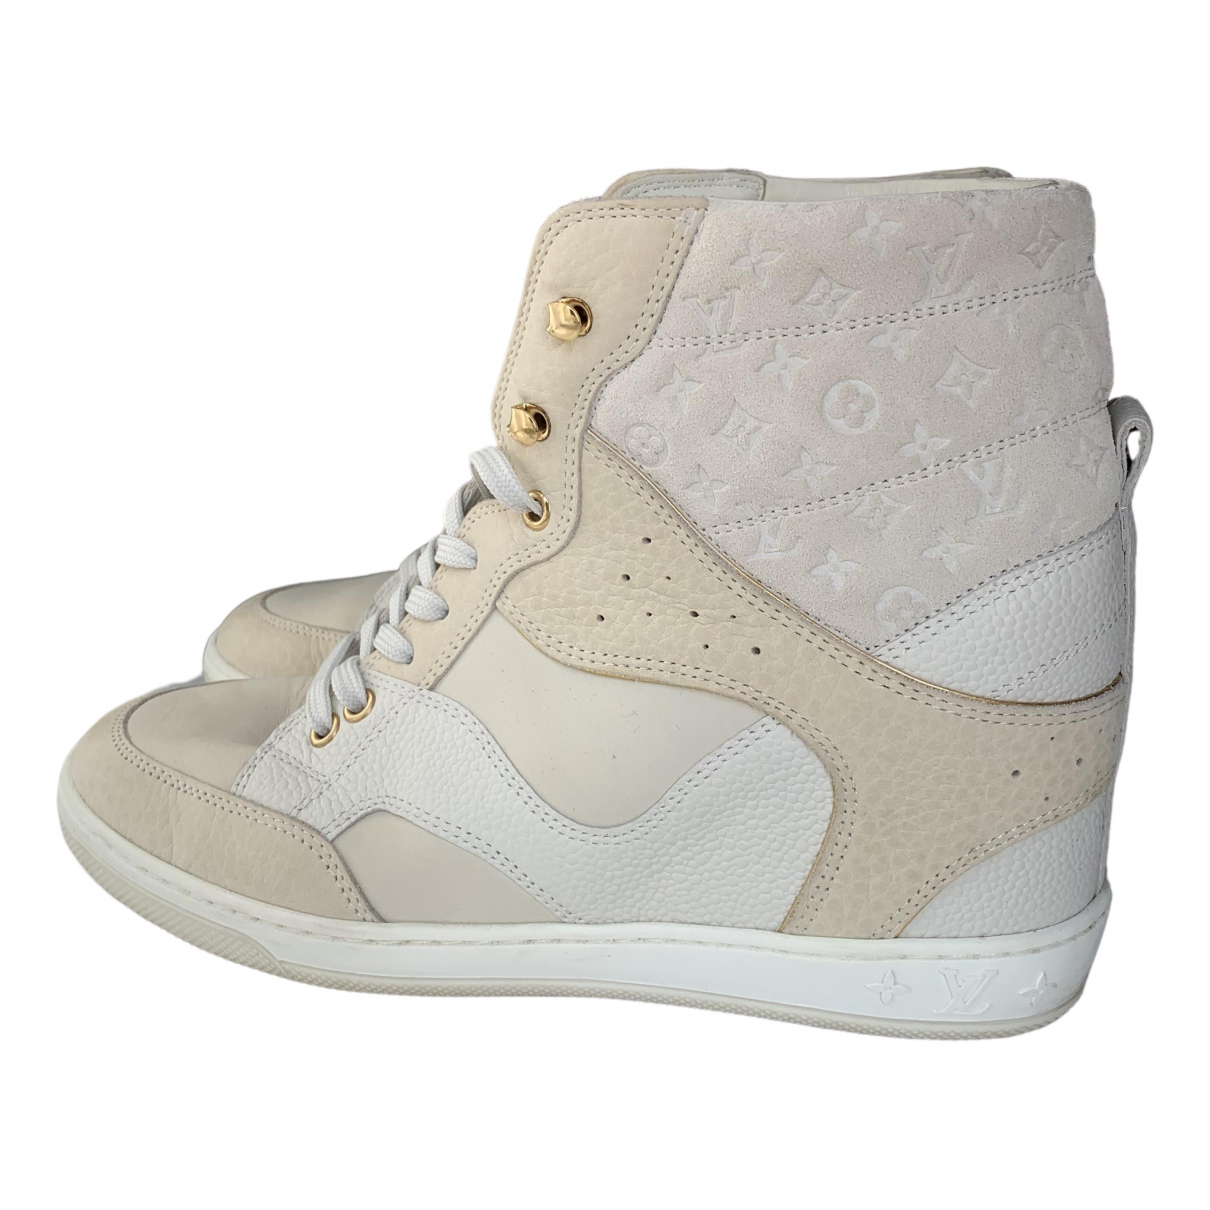 Louis Vuitton \N White Leather Trainers for Women 37.5 EU